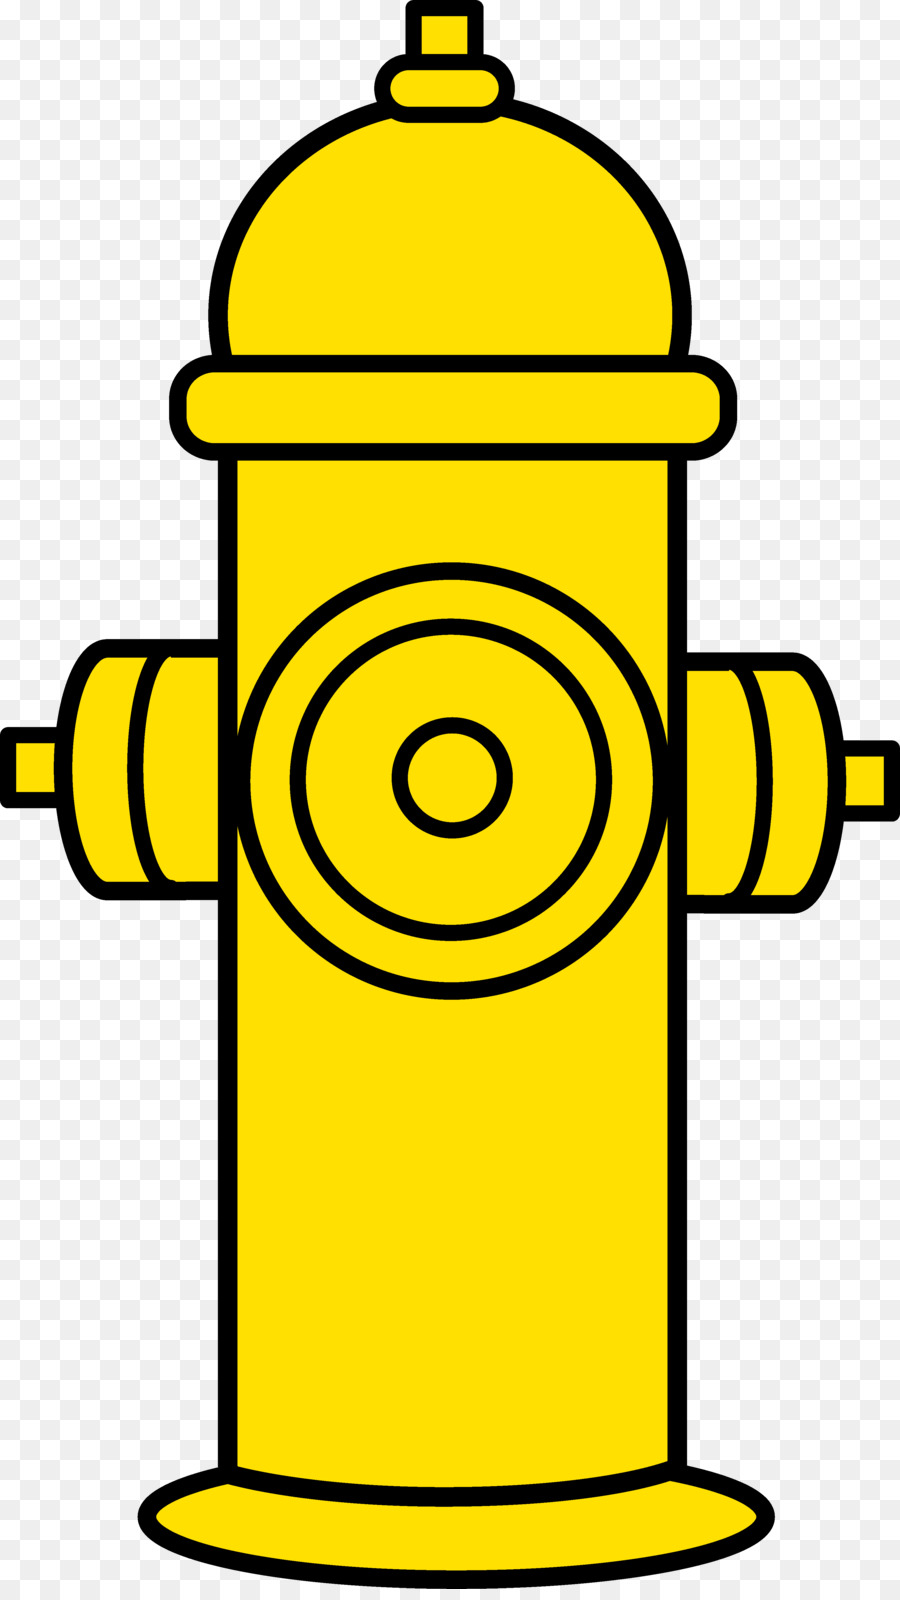 fire hydrant royalty free clip art fire hydrant clipart png rh kisspng com microsoft clipart images copyright free copyright free clip art images for honey